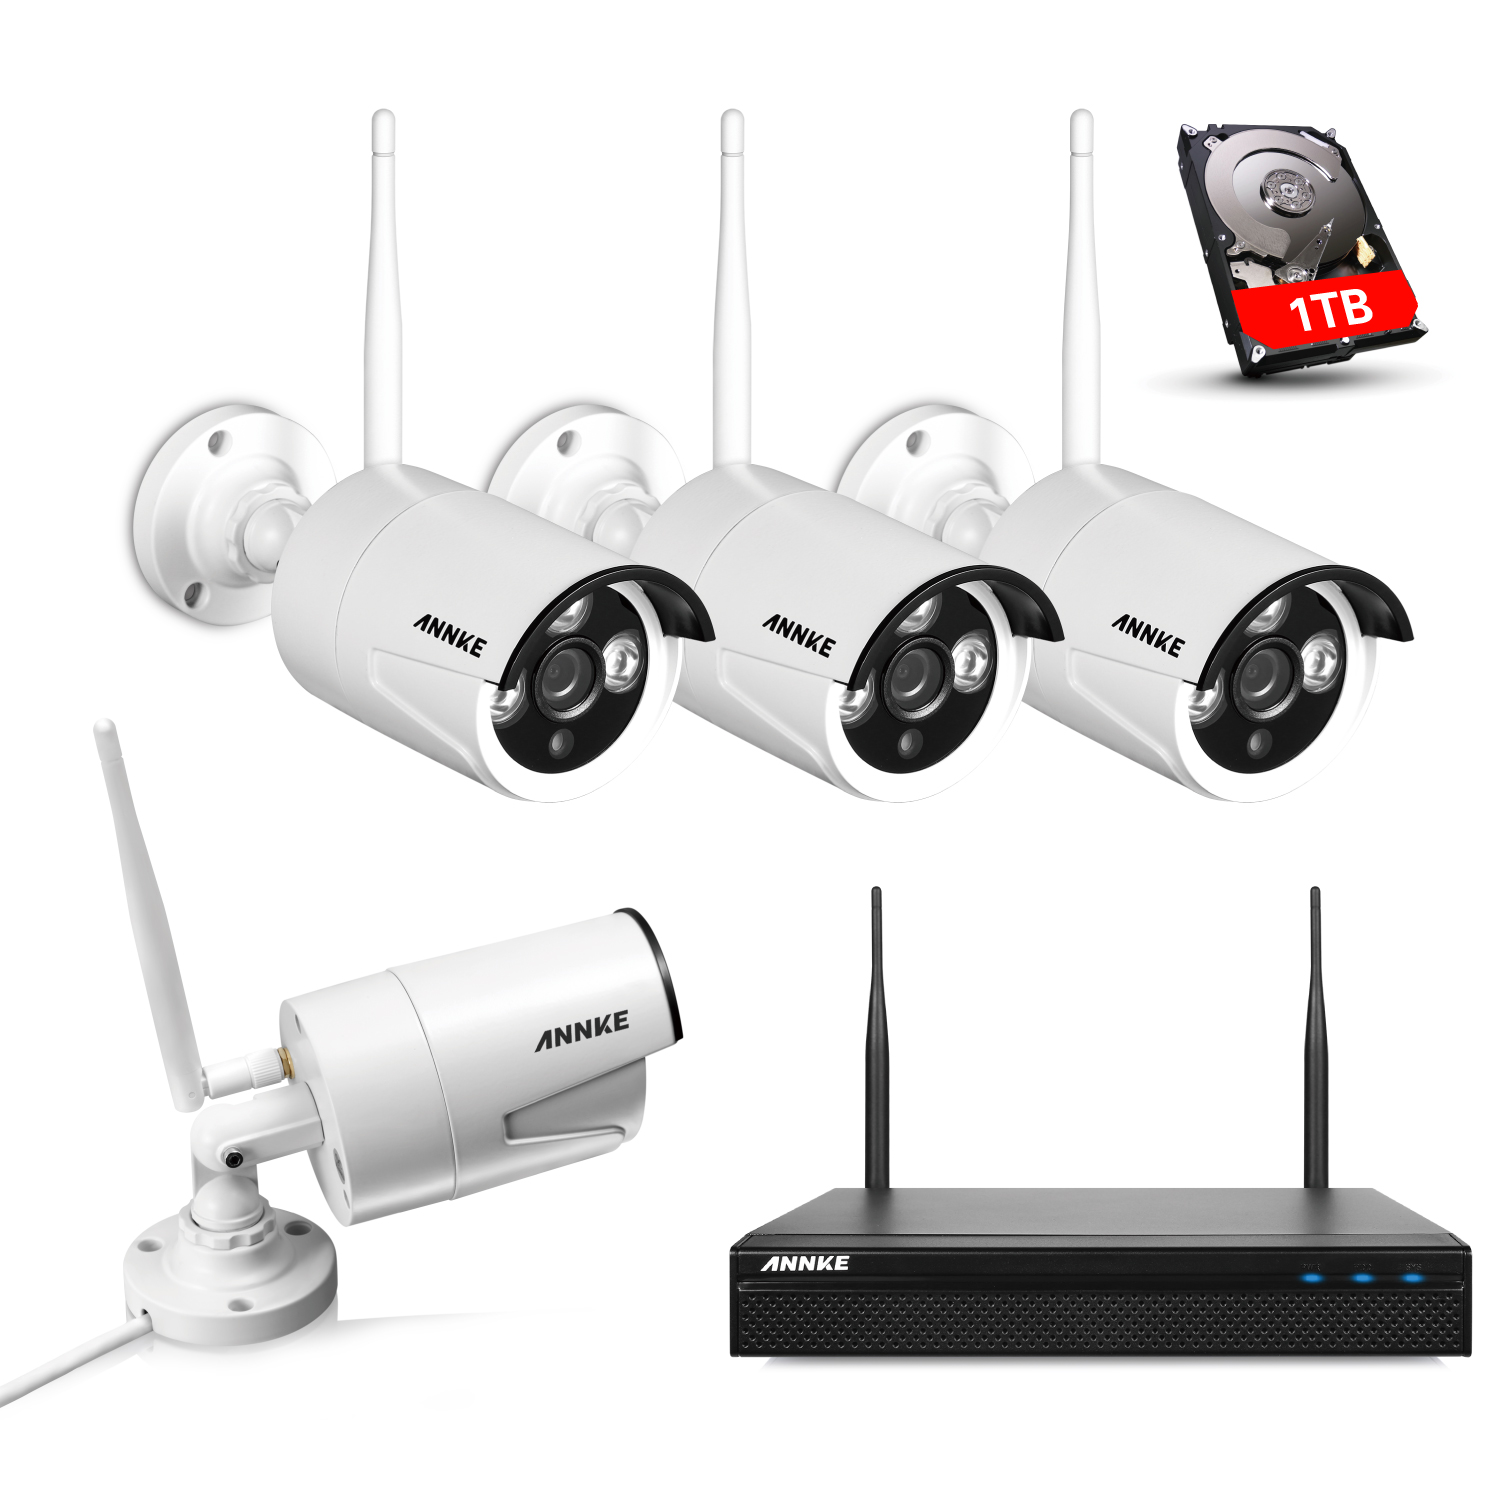 Annke 960P Wireless Network/IP Security Camera System, 4CH WIFI NVR with 4x 1.3MP Surveillance Cameras, Quick Remote view, 1280*960 High Resolution with Superior Night vision With 1TB Hard Drive Disk